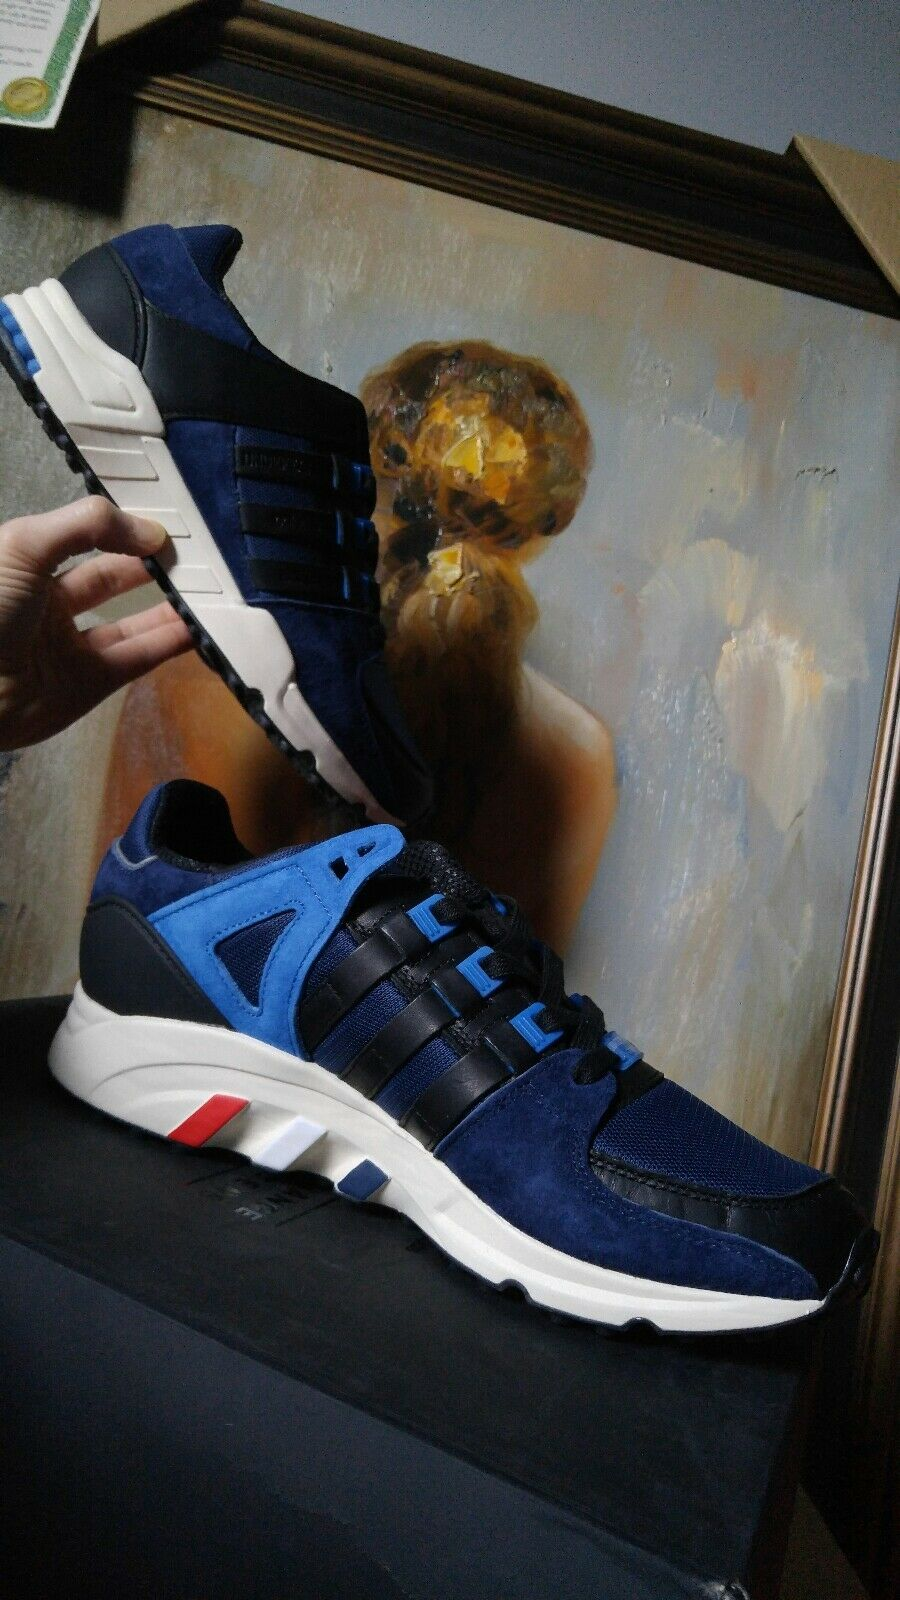 Adidas EQT Support SE Consortium Colette Undefeated Size 9 9.5 10 10.5 bluee